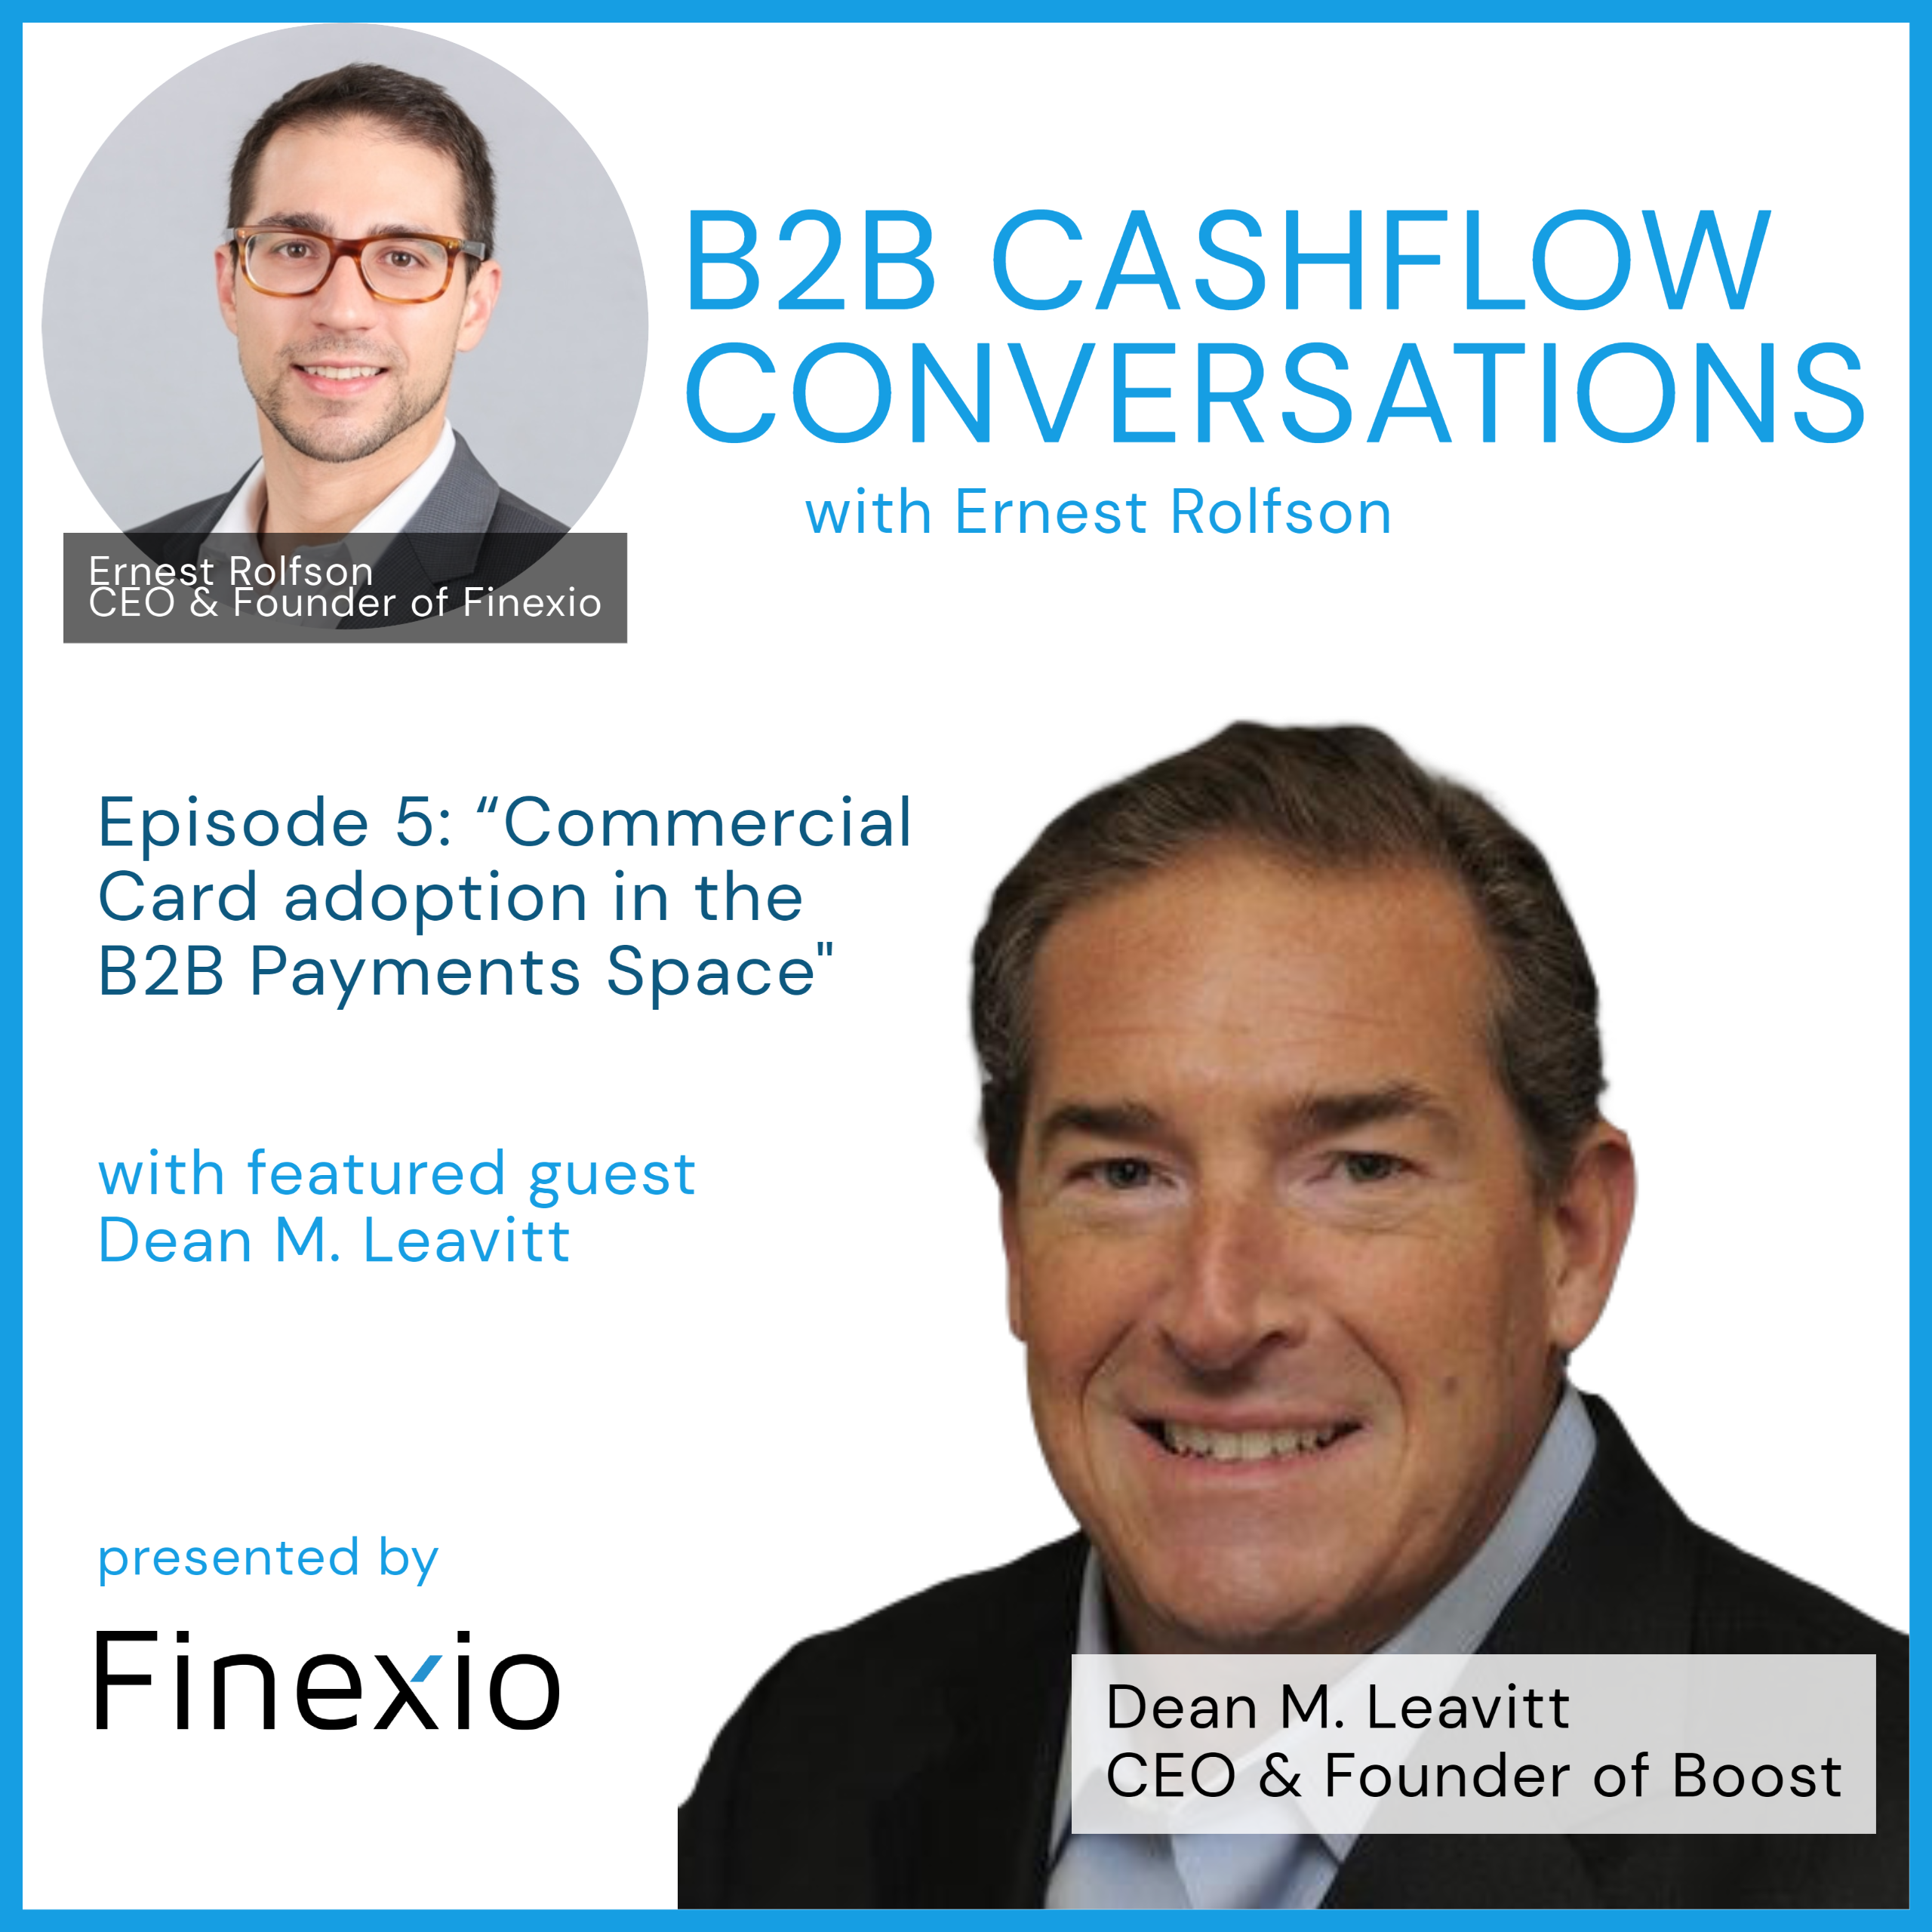 Paying It Forward Episode 1 image:  Episode 1 title is Supporting Innovation in Fintech with Guest Dave Peterson